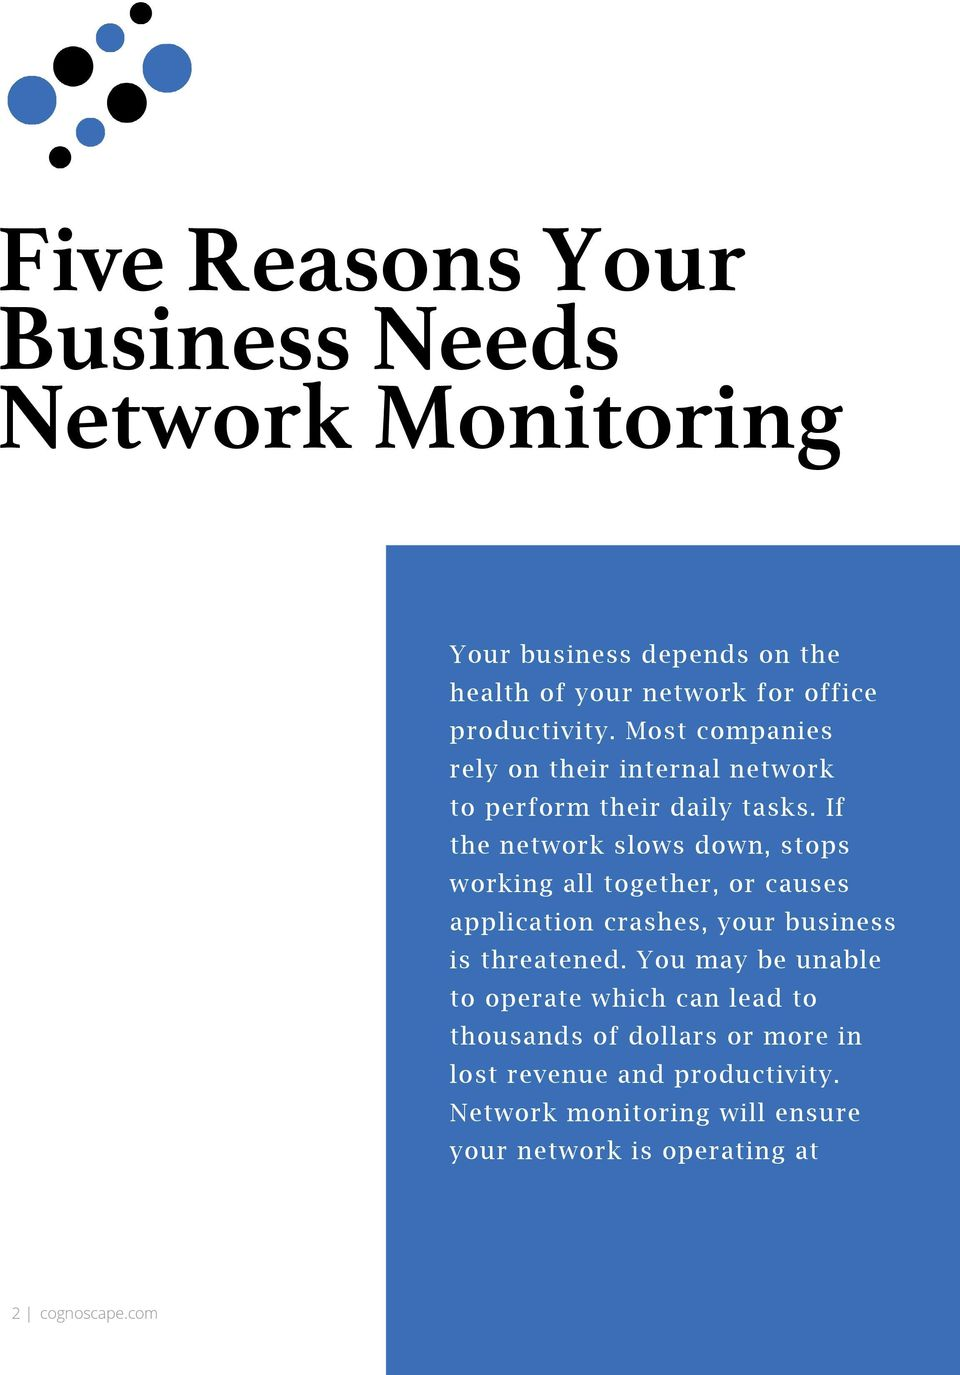 If the network slows down, stops working all together, or causes application crashes, your business is threatened.